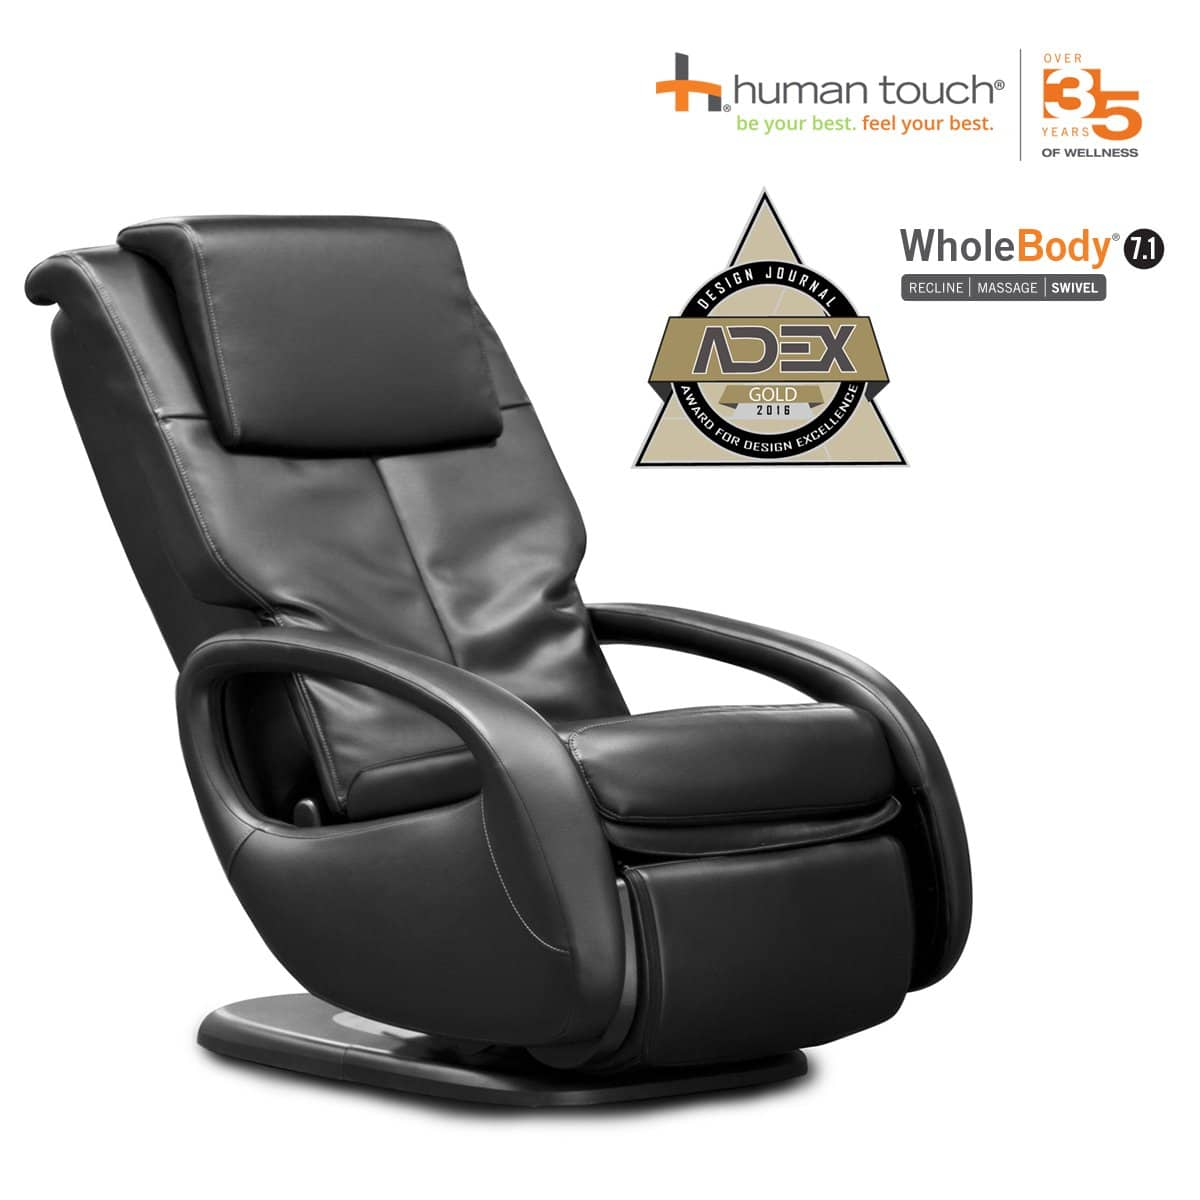 HumanTouch Massage Chair topratedhomeproducts